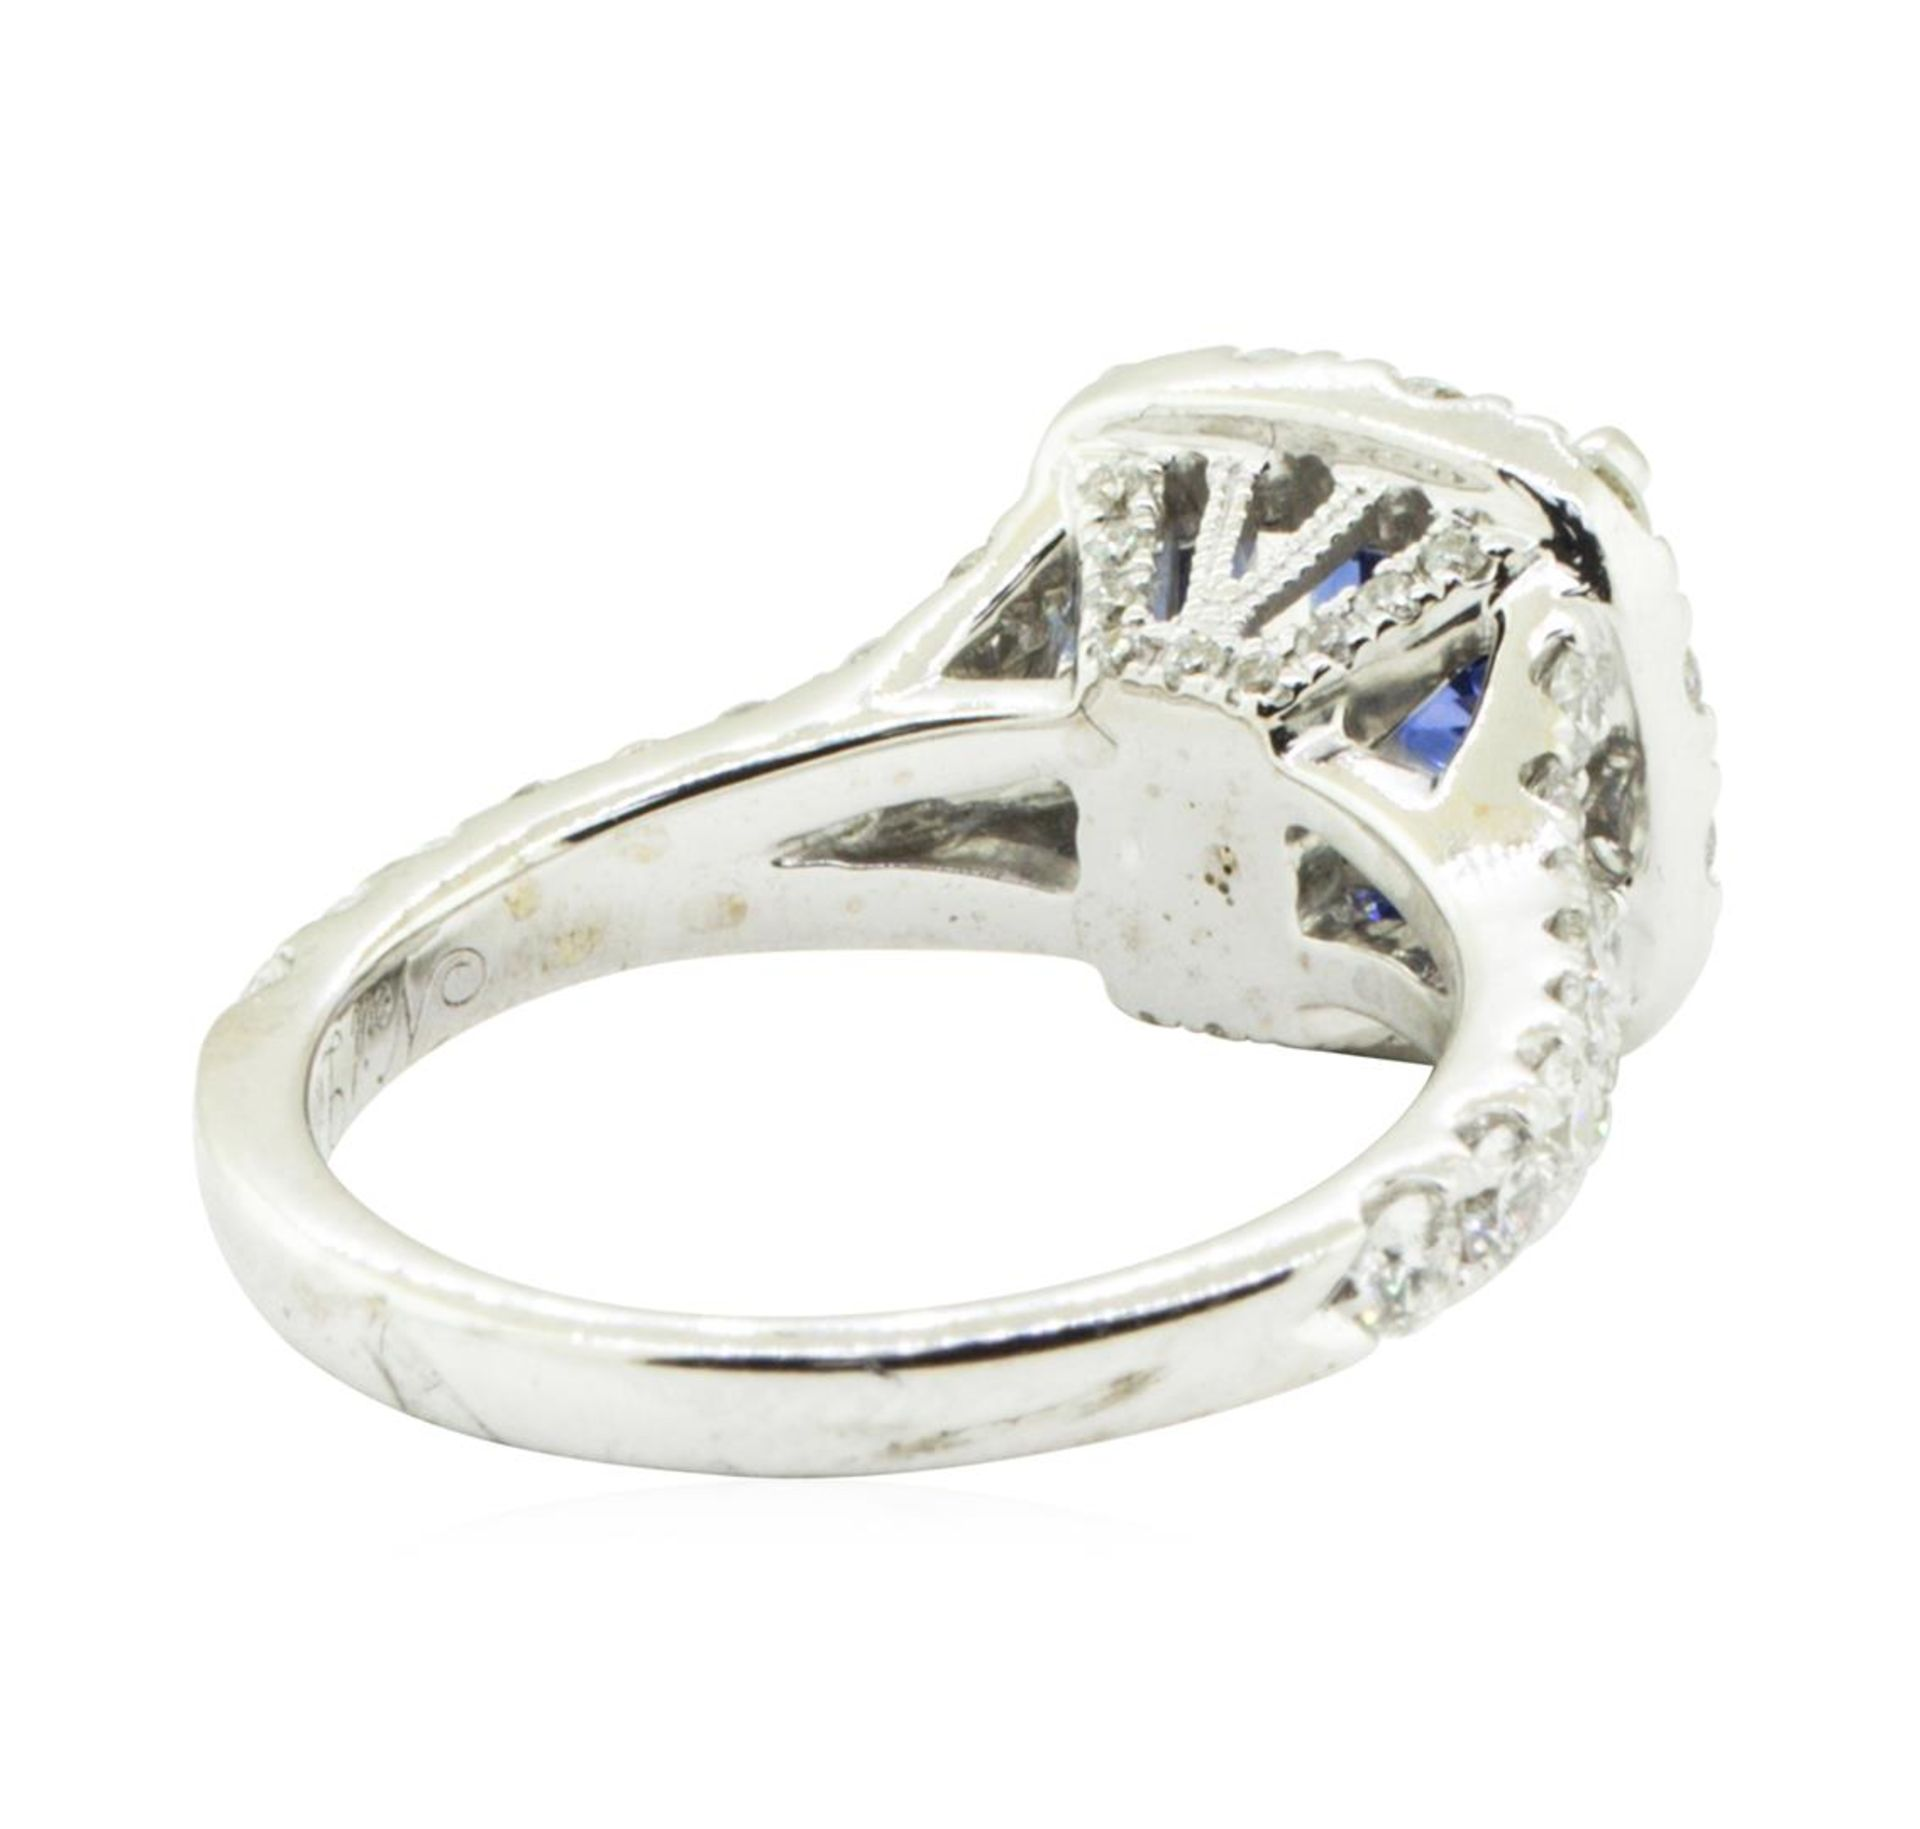 2.47 ctw Round Brilliant Blue Sapphire And Diamond Ring - 14KT White Gold - Image 3 of 5